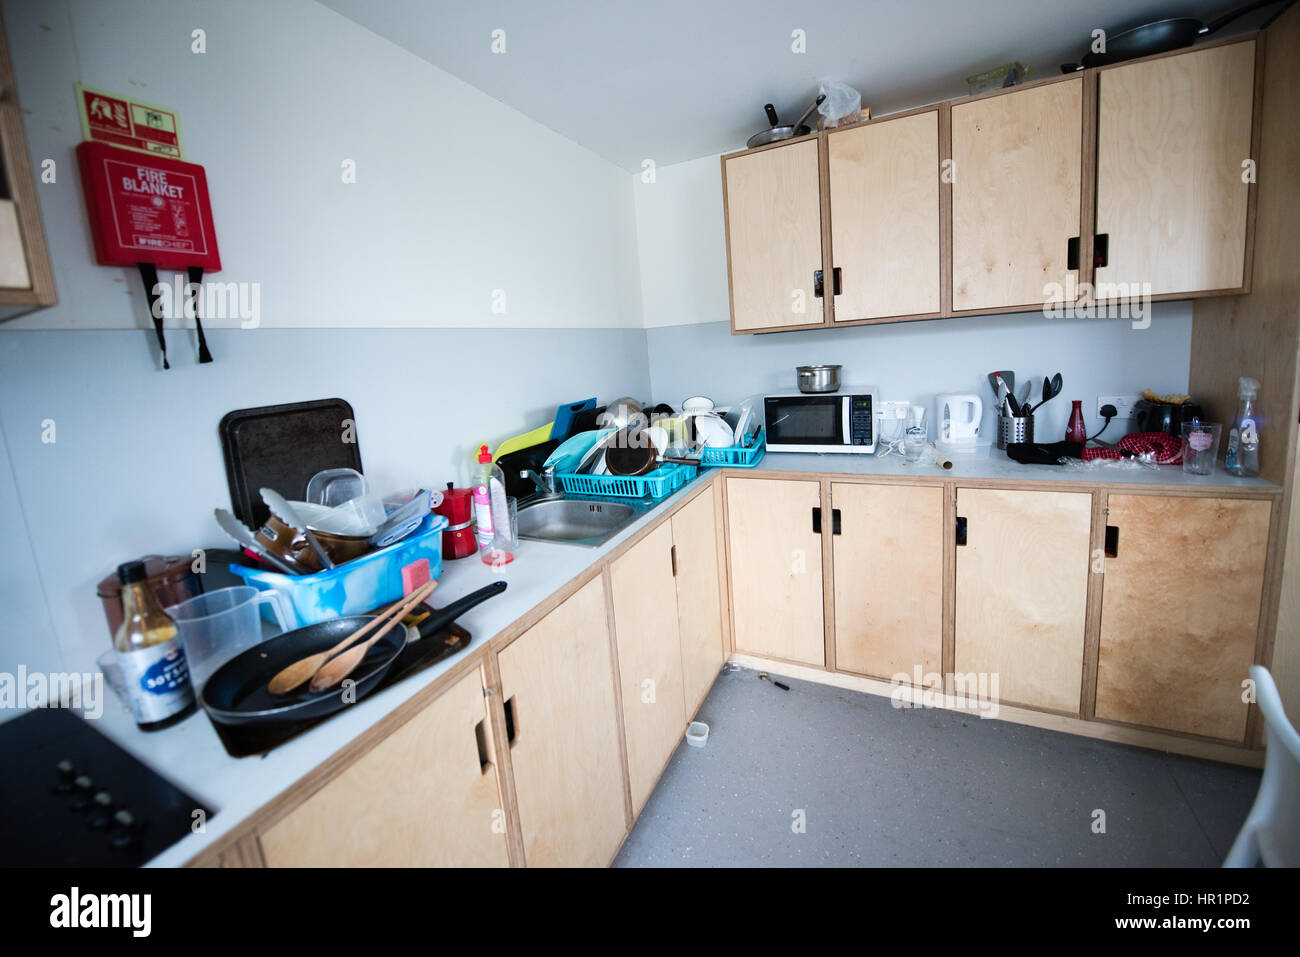 Filthy Kitchen Stock Photos & Filthy Kitchen Stock Images - Alamy